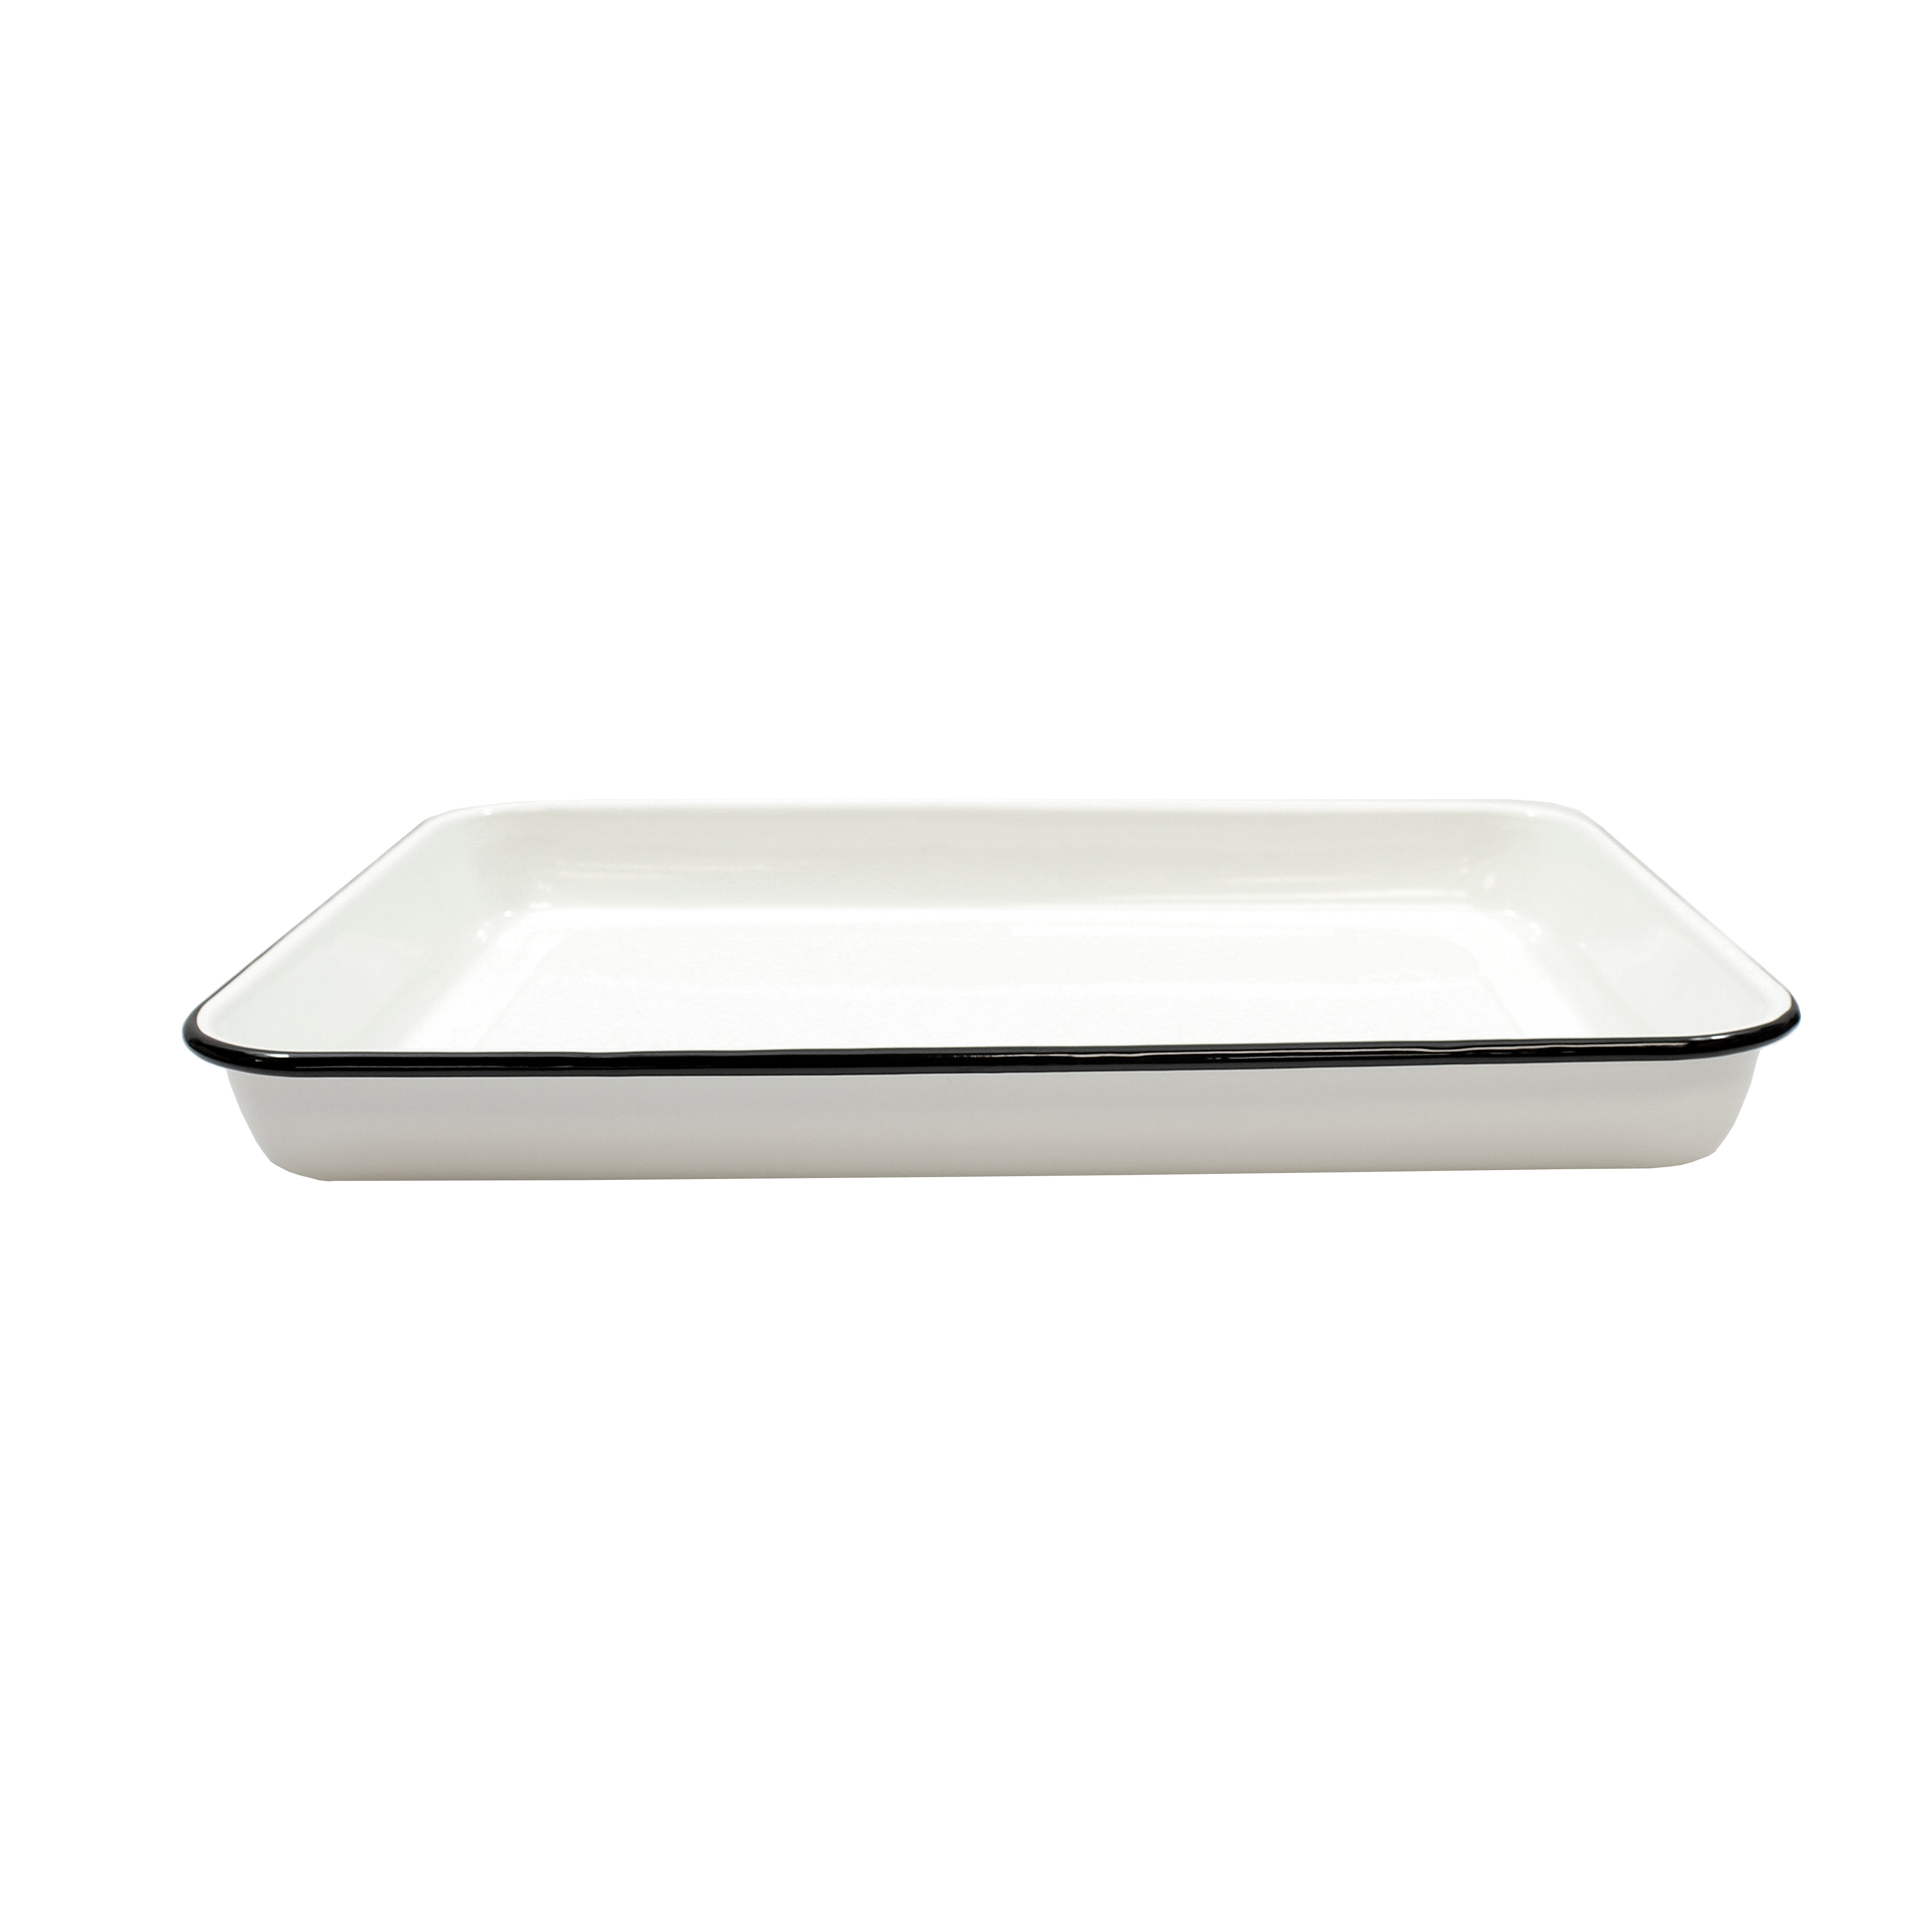 TableCraft Products 80012 serving & display tray